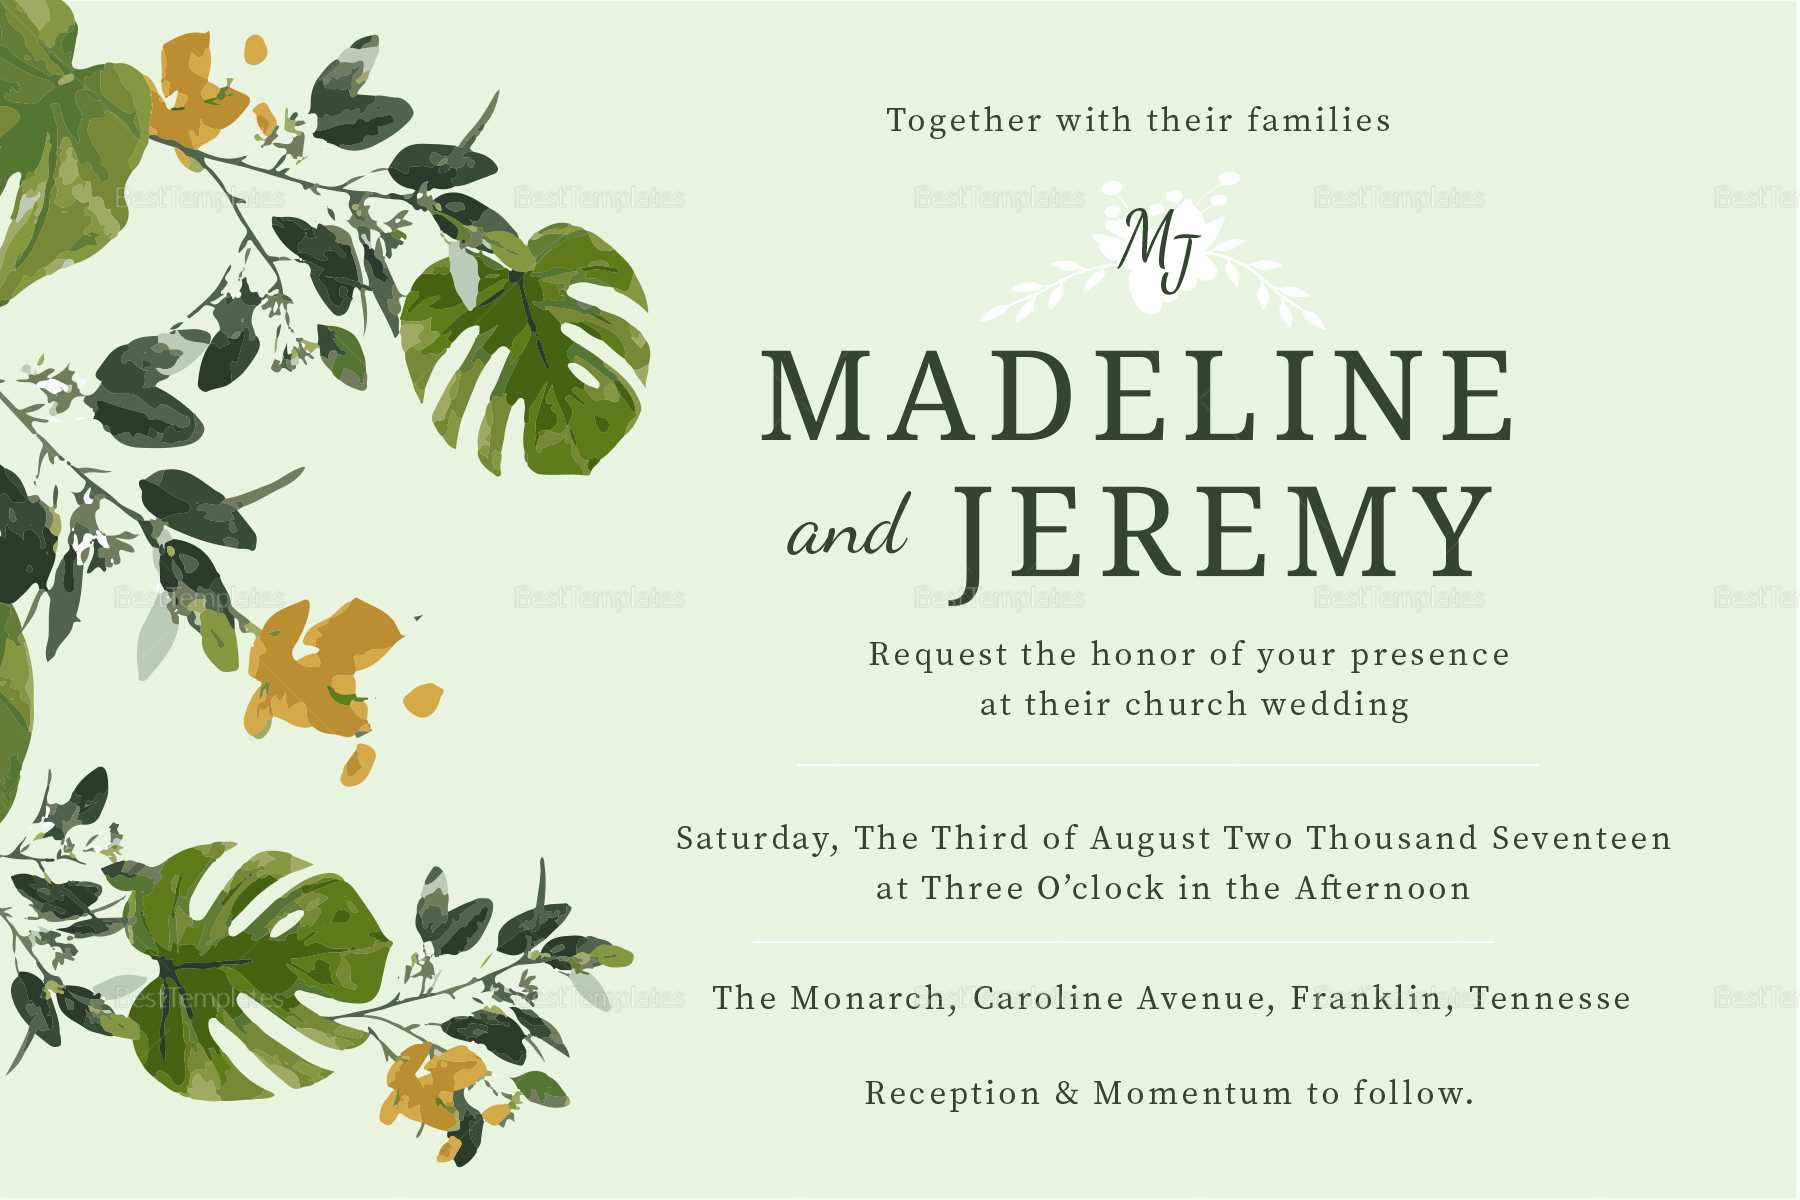 Church Wedding Invitation In Landscape And Portrait Intended For Church Wedding Invitation Card Template